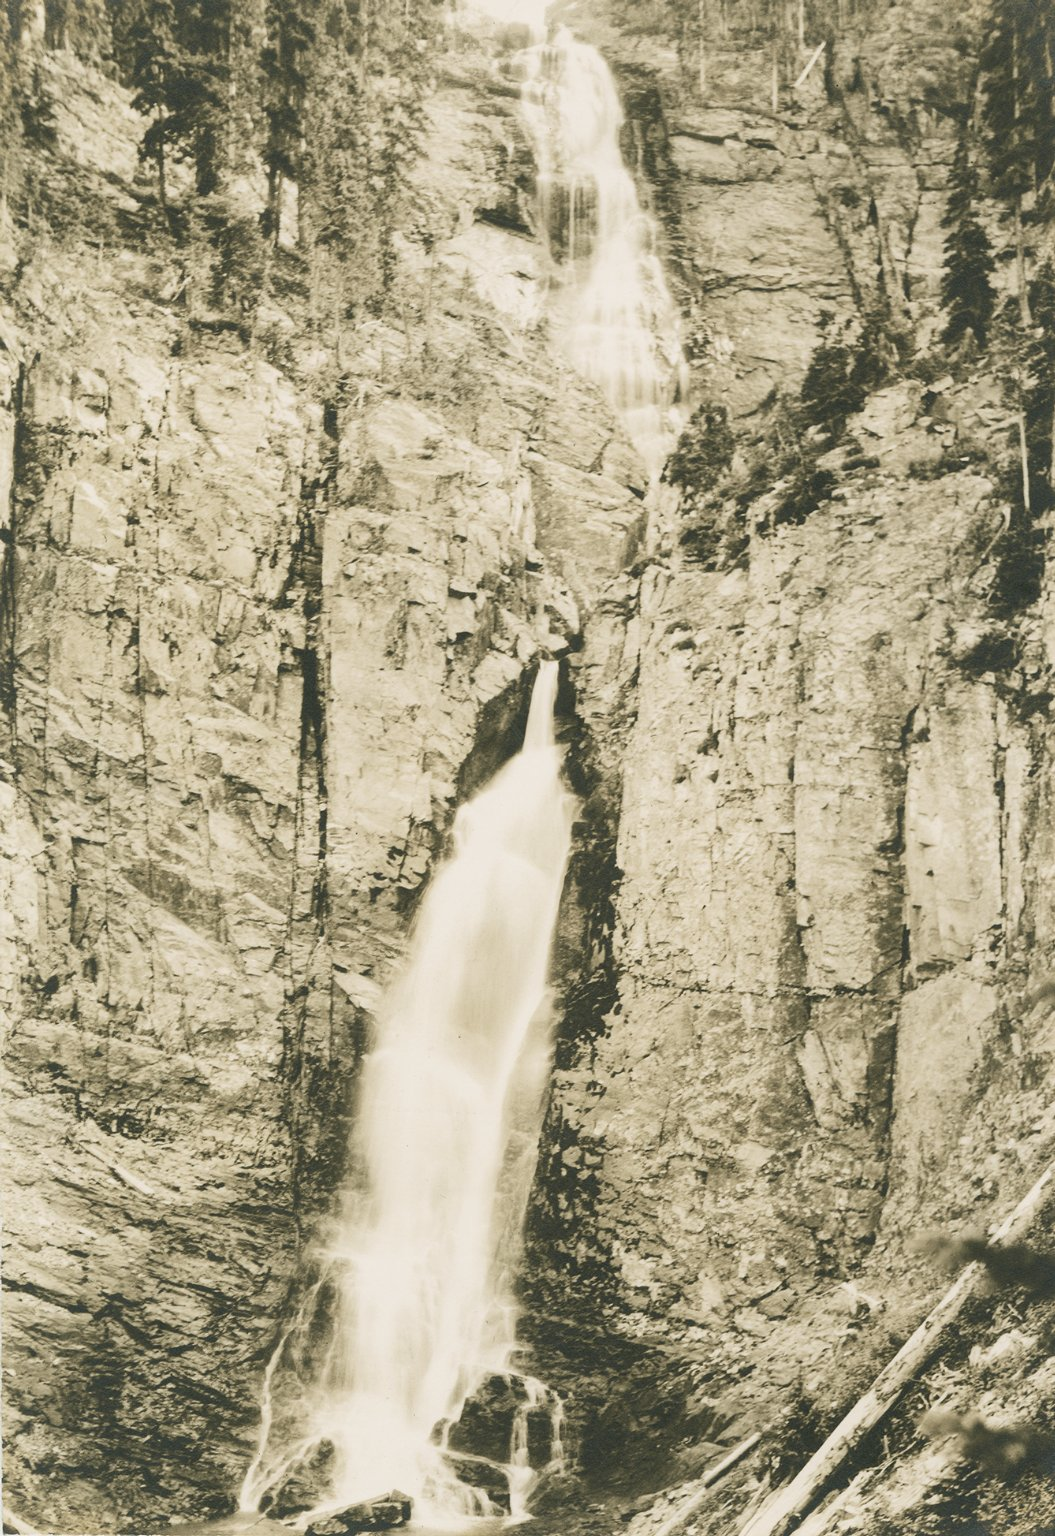 Untitled photo of a 2-tiered waterfall down a sheer rock face.